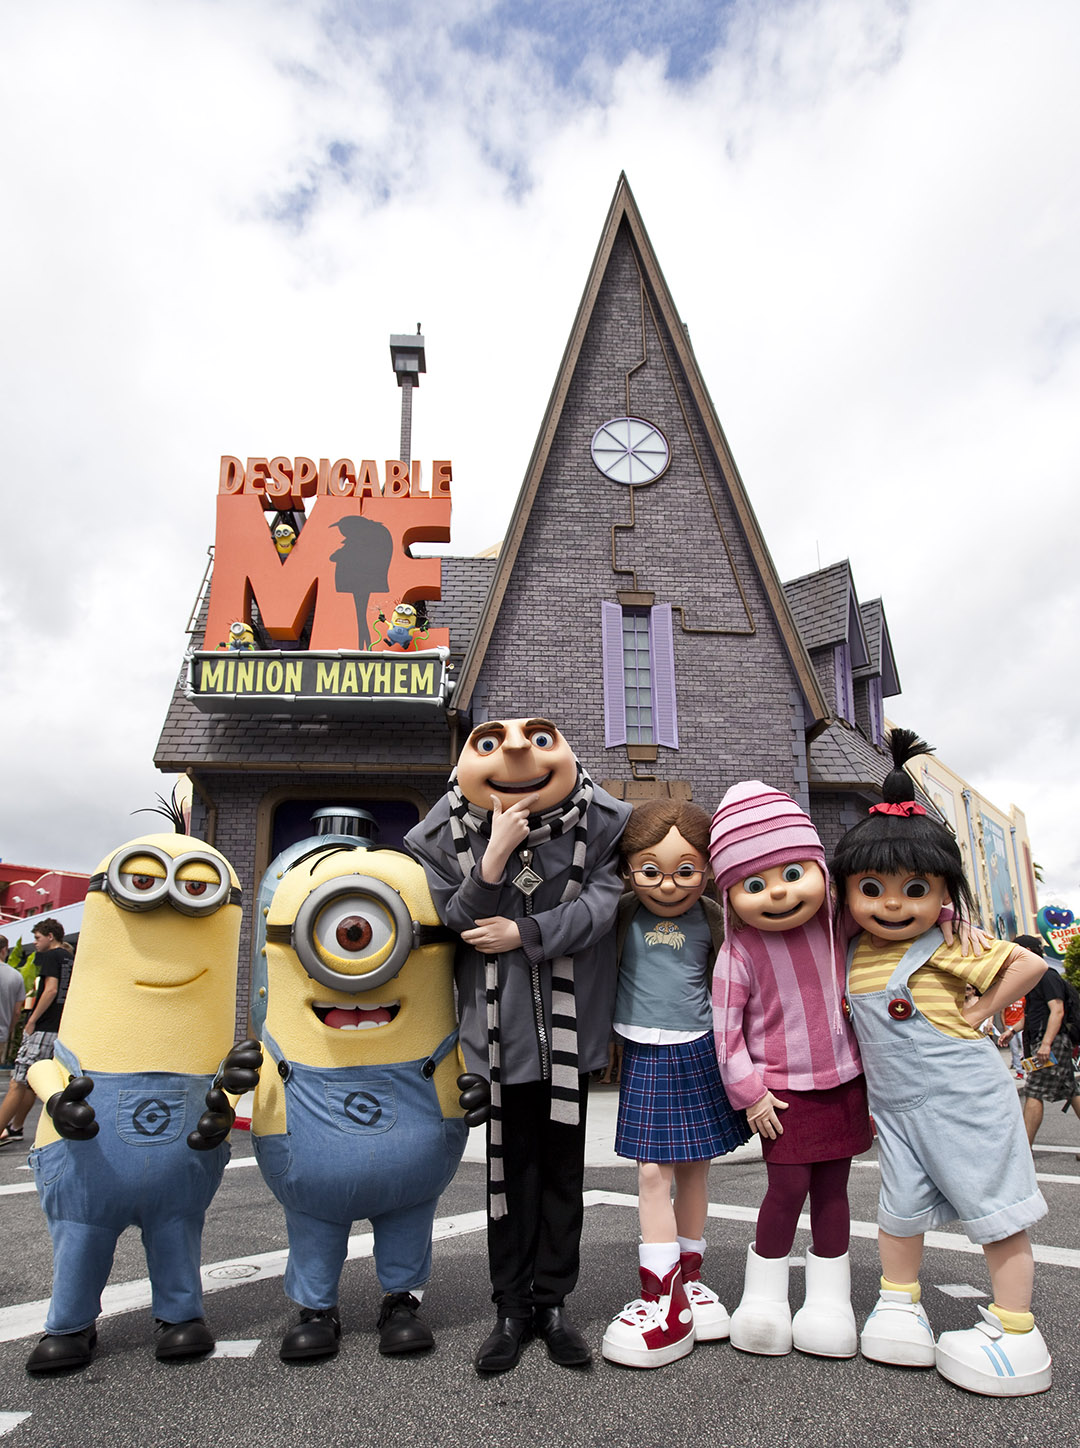 One of the most hilarious and heartwarming theme park experiences ever created – Despicable Me Minion Mayhem – is now open at Universal Orlando Resort, bringing minions, mayhem and tons of laughter to Universal Studios. The brand-new ride combines the outrageous humor and memorable characters from the hit Universal Pictures and Illumination Entertainment's blockbuster film, Despicable Me, with an all-new storyline, incredible new animation and the latest 3-D technology to create a wildly-hysterical and unforgettable experience.